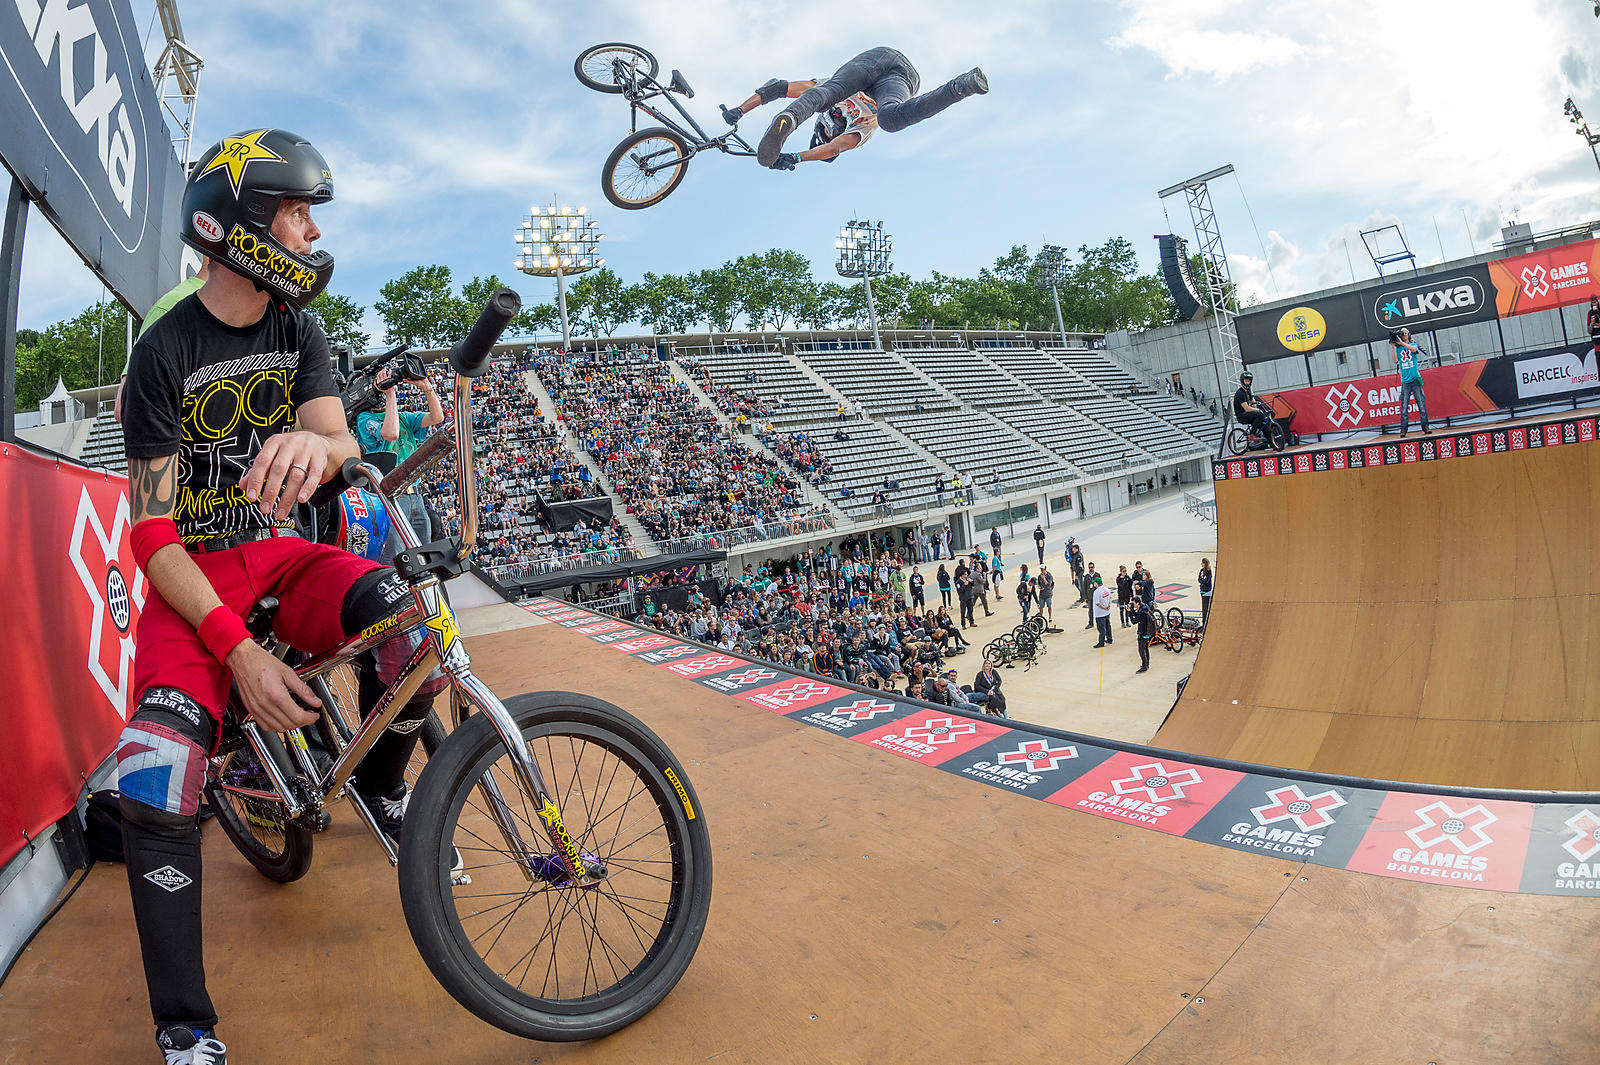 X Games Barcelona 2013 - May 17, 2013